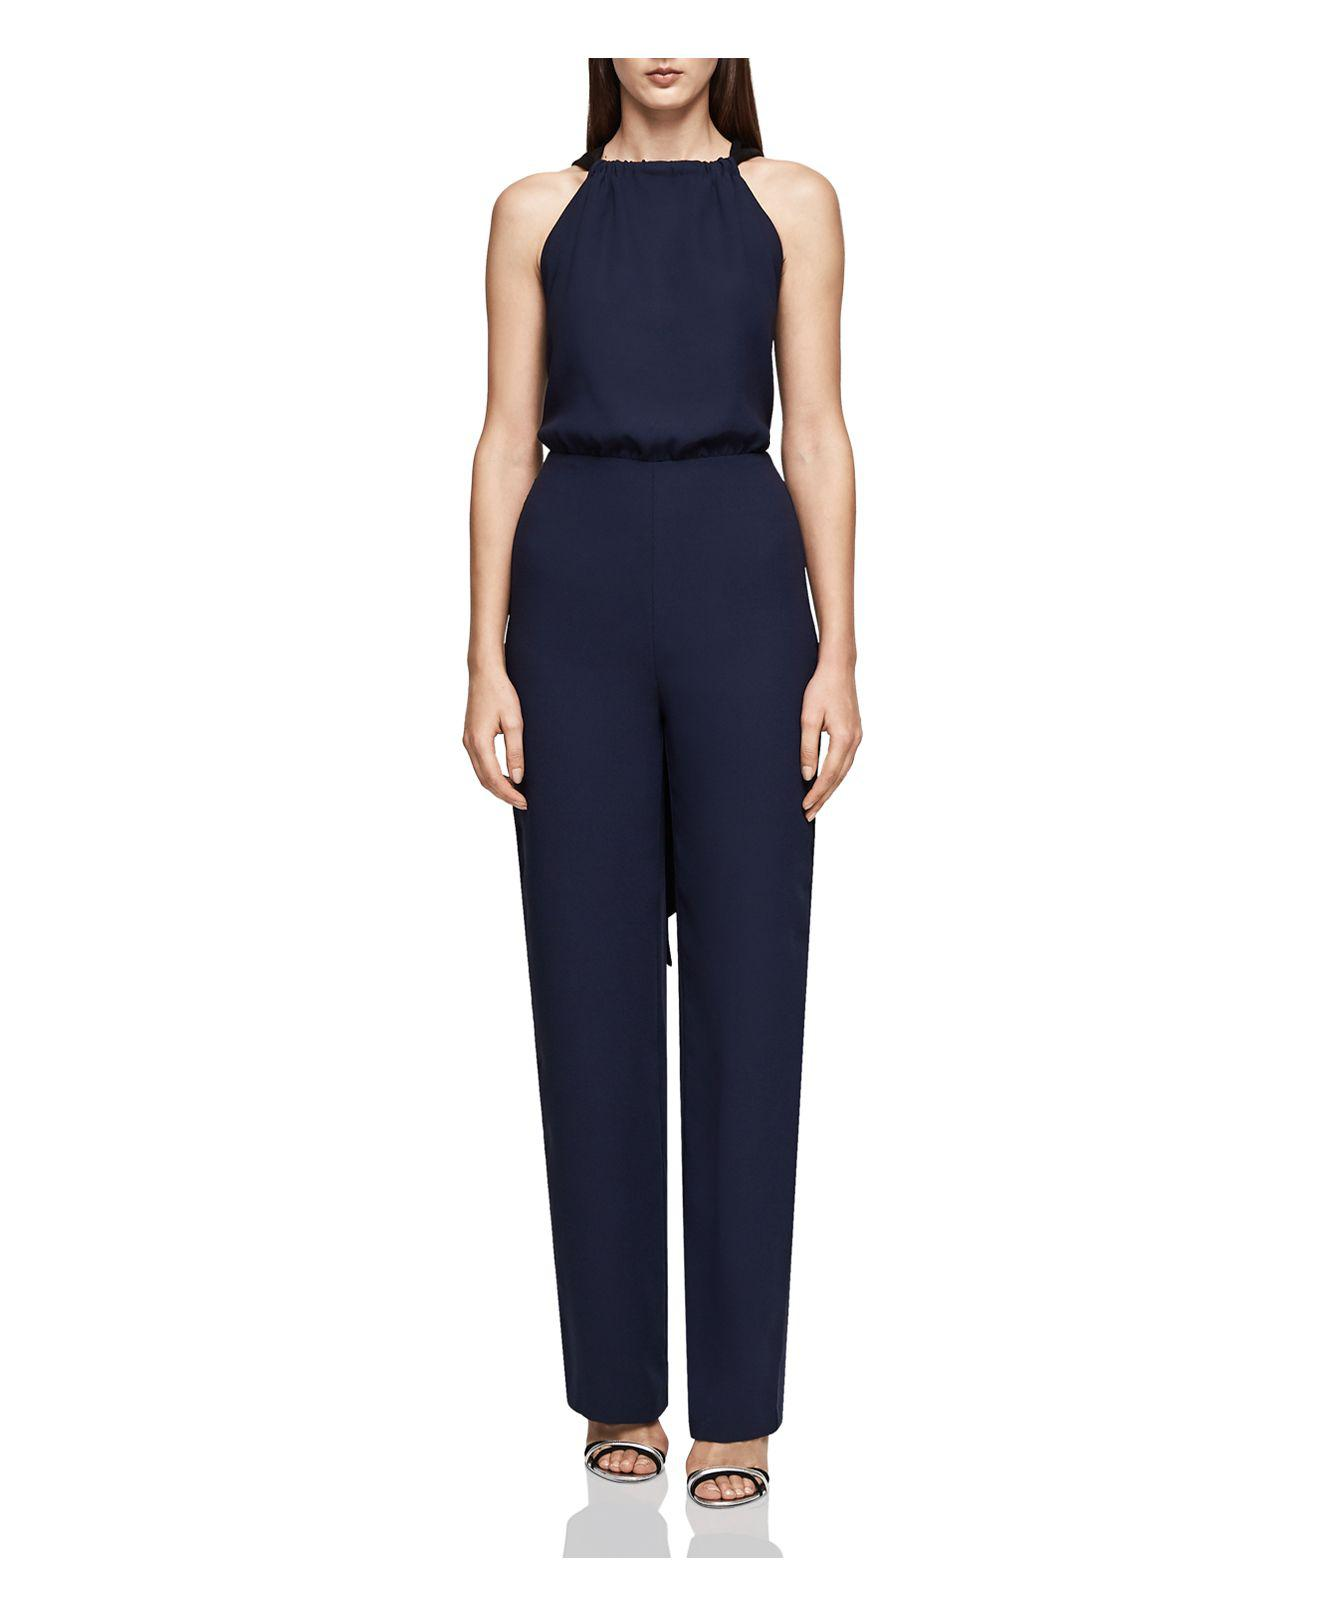 bc138340527 Reiss Lolita Crisscross Back Sash Jumpsuit in Blue - Lyst